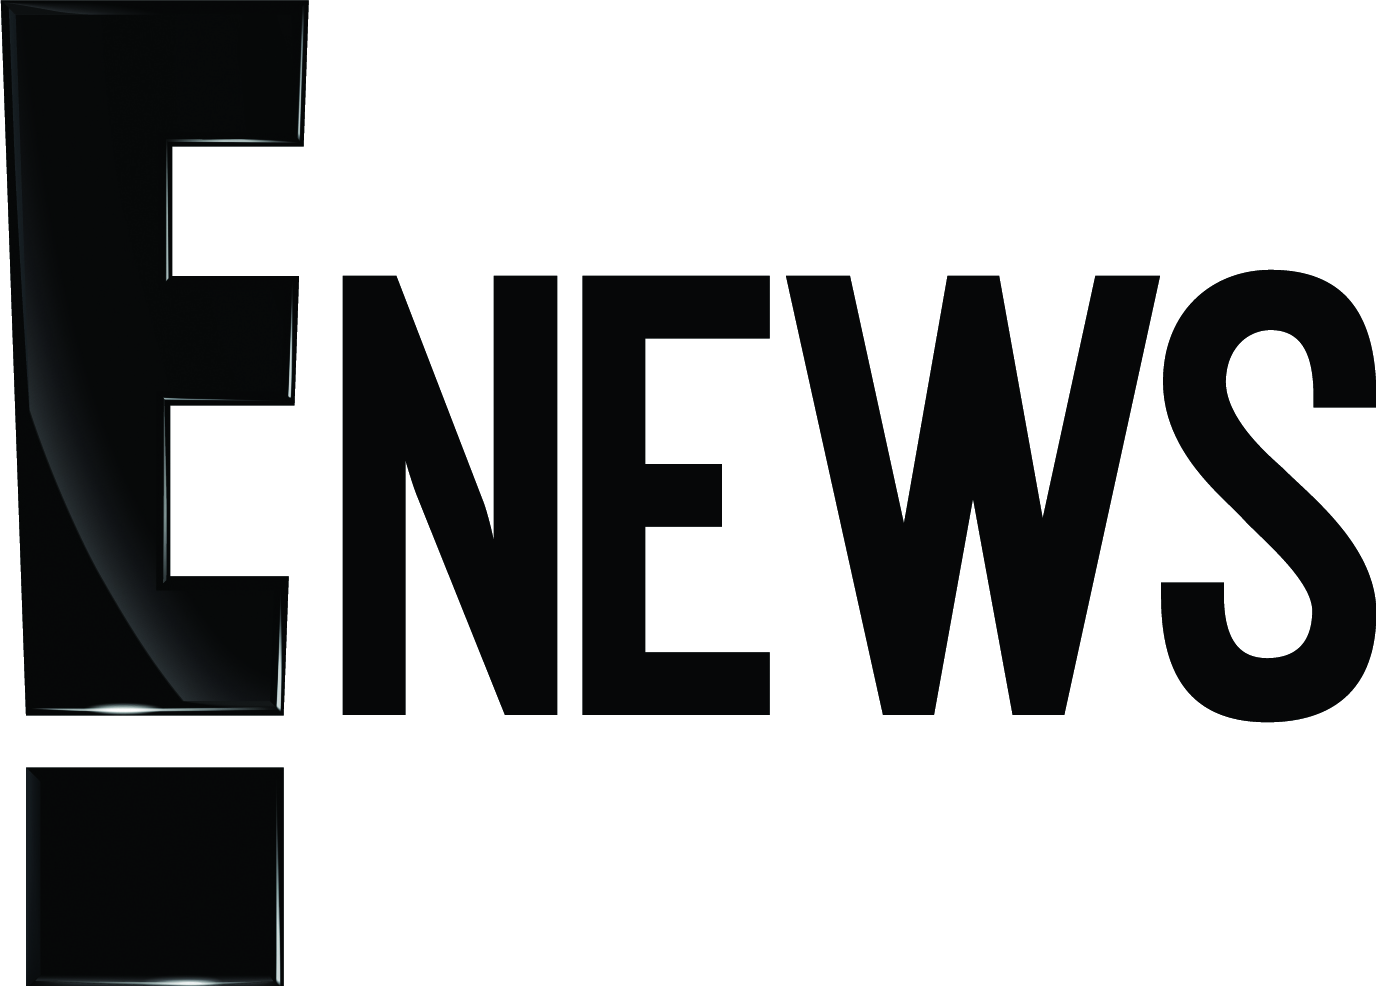 File:E! News current logo.png - Wikimedia Commons